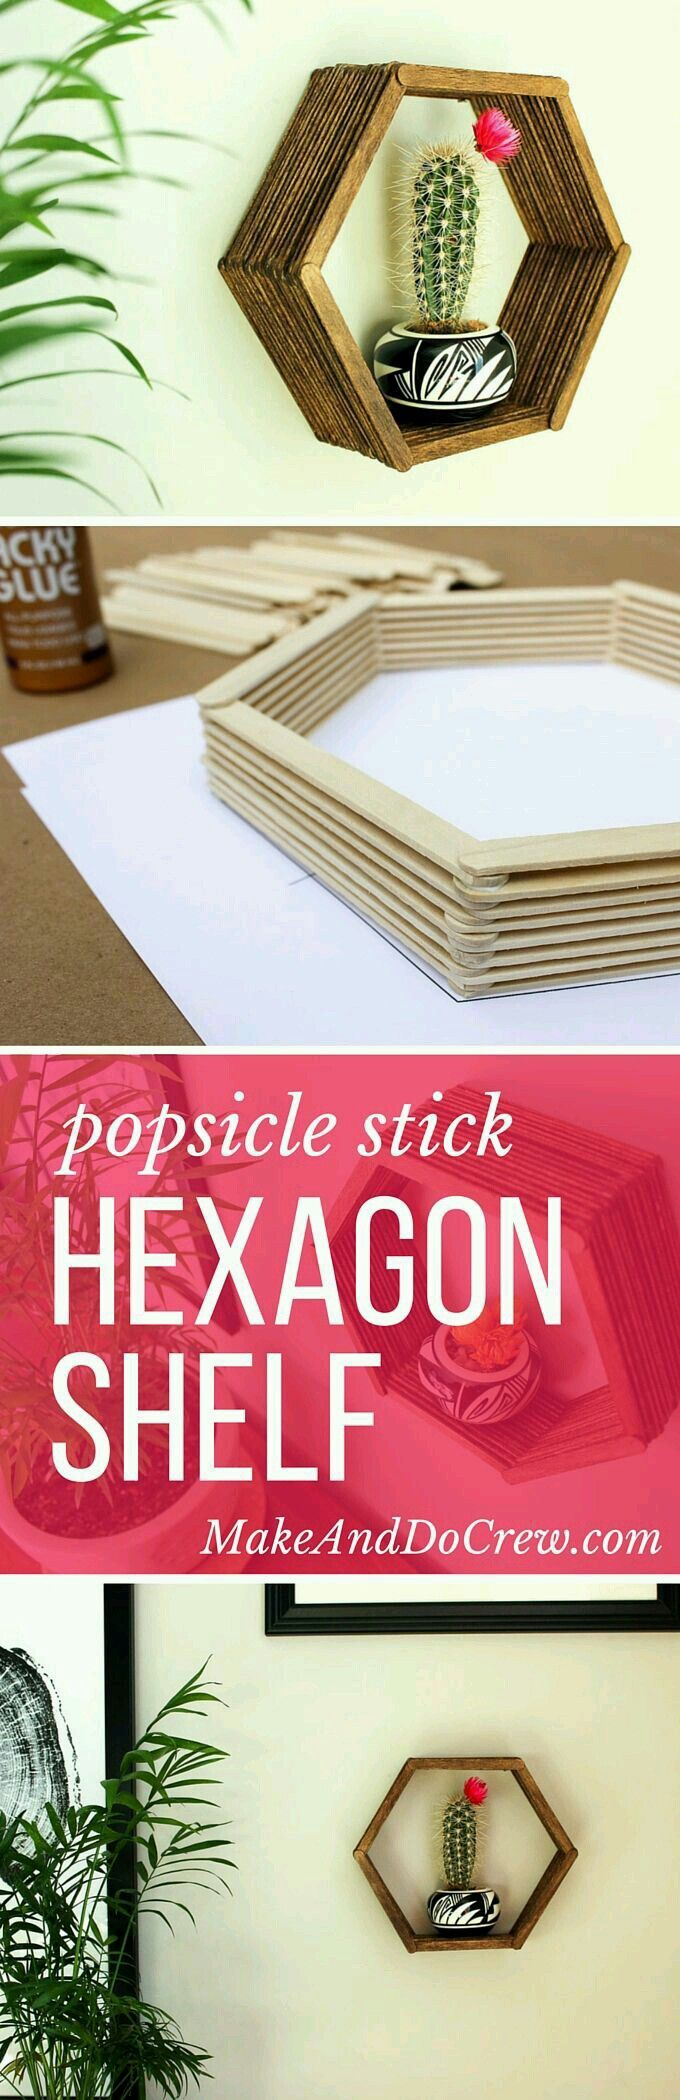 hexagon shelf.